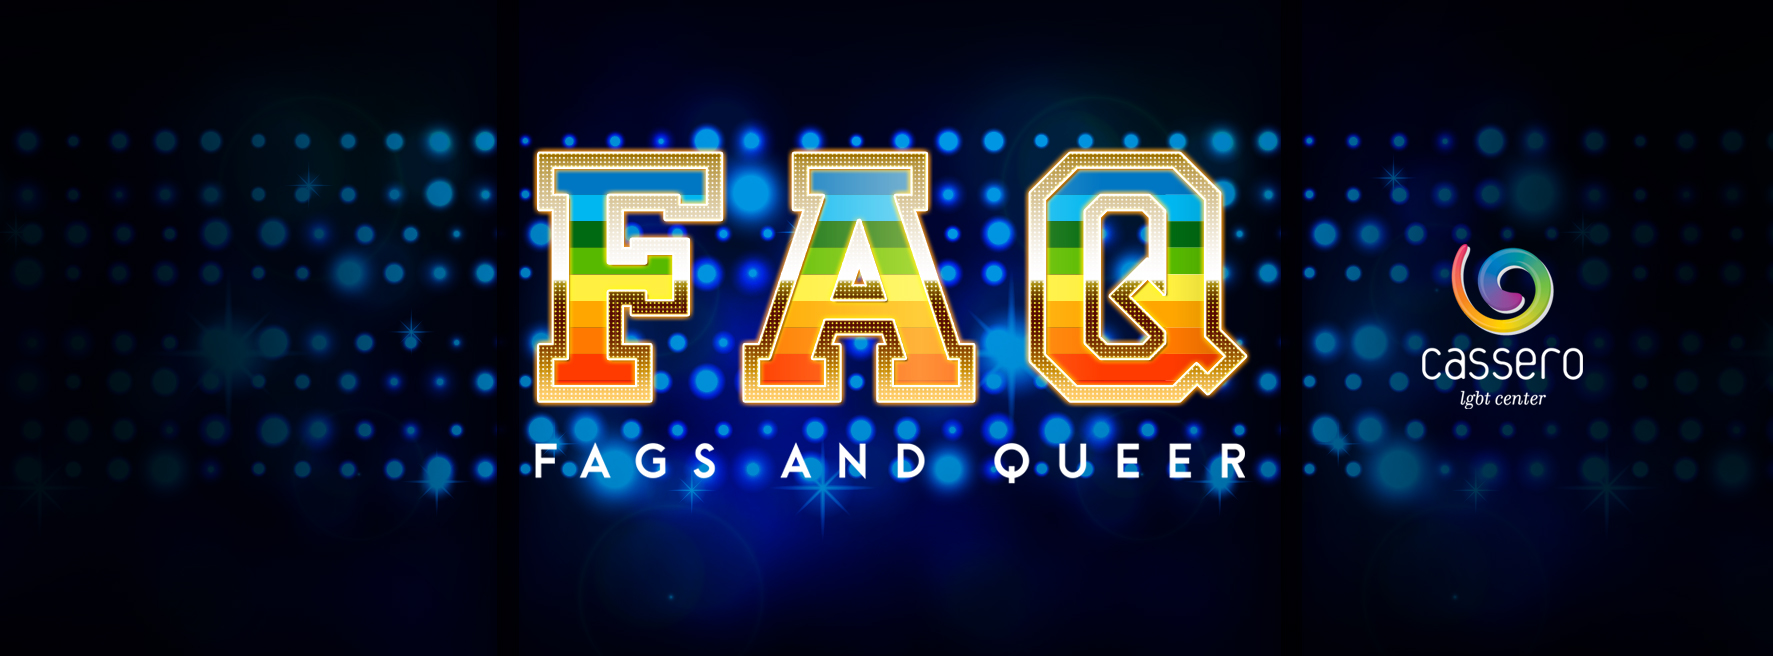 FAQ – Fags And Queer